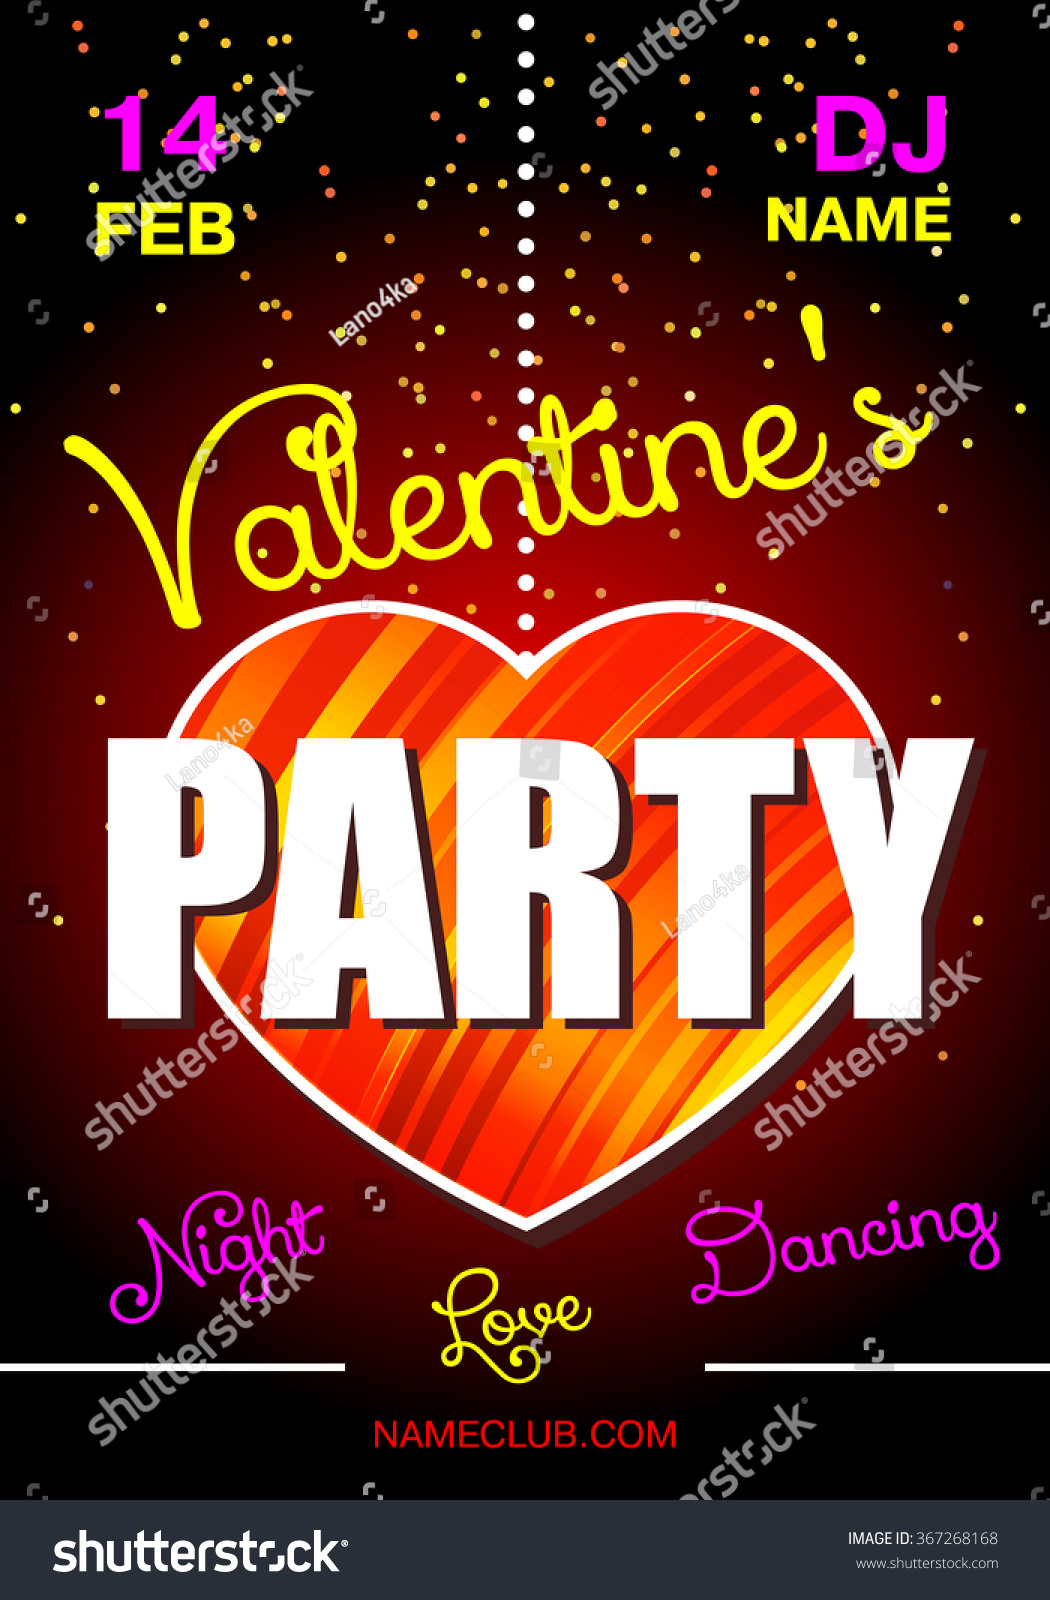 Valentines Day Party Poster Dance Party Stock Vector Royalty Free 367268168